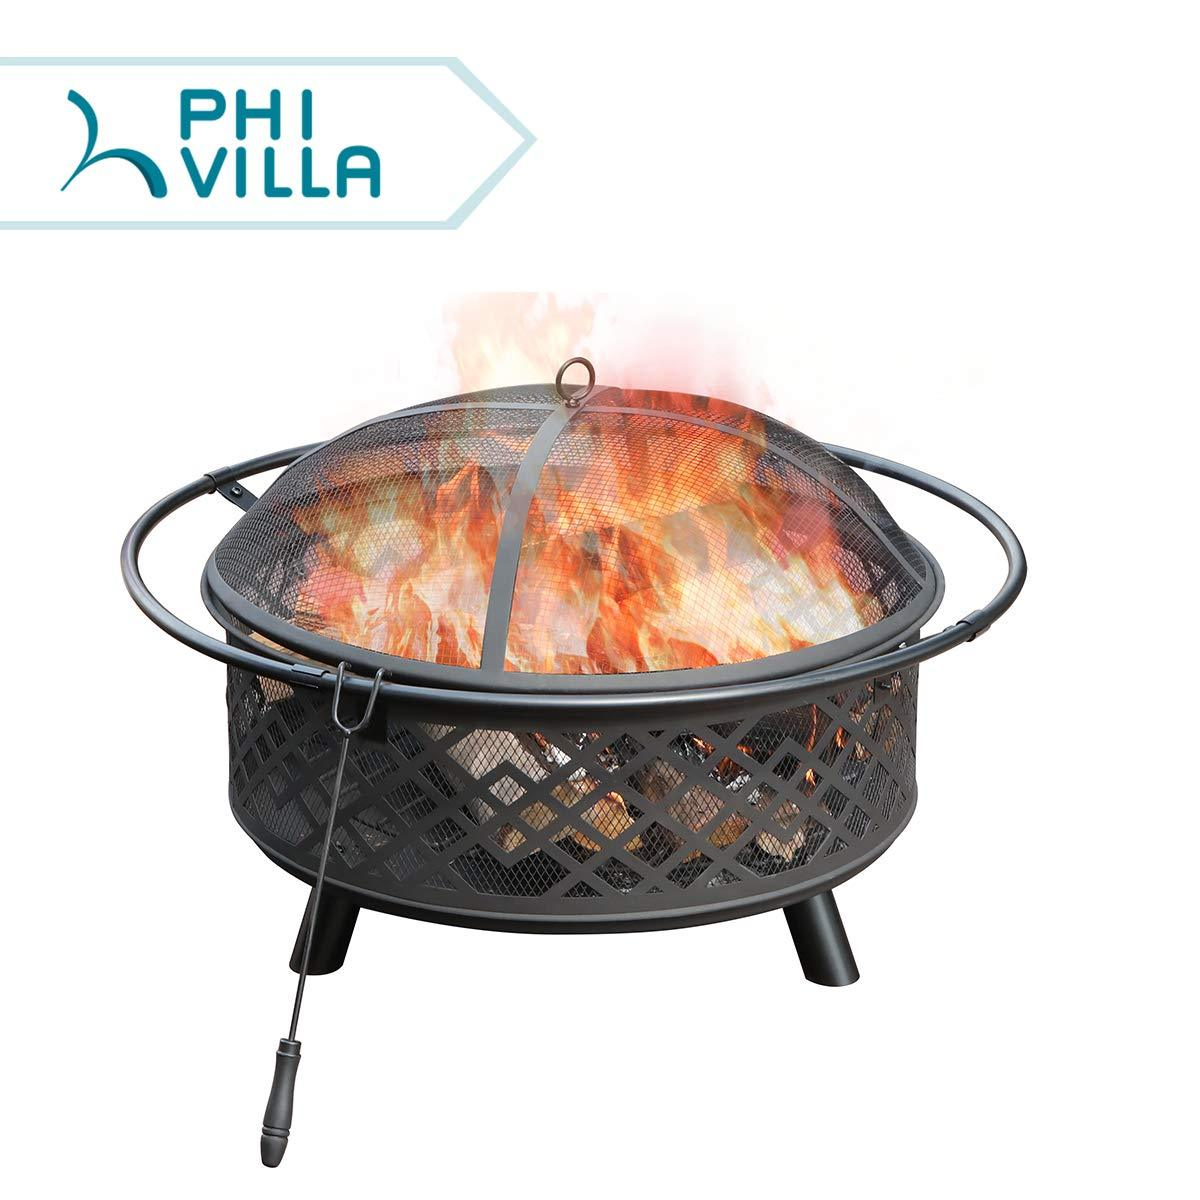 Phi Villa 32 Fire Pit Large Steel Patio Fireplace Cutouts Pattern With Poker Spark Screen Fire Pit Patio Bonfire Pits Patio